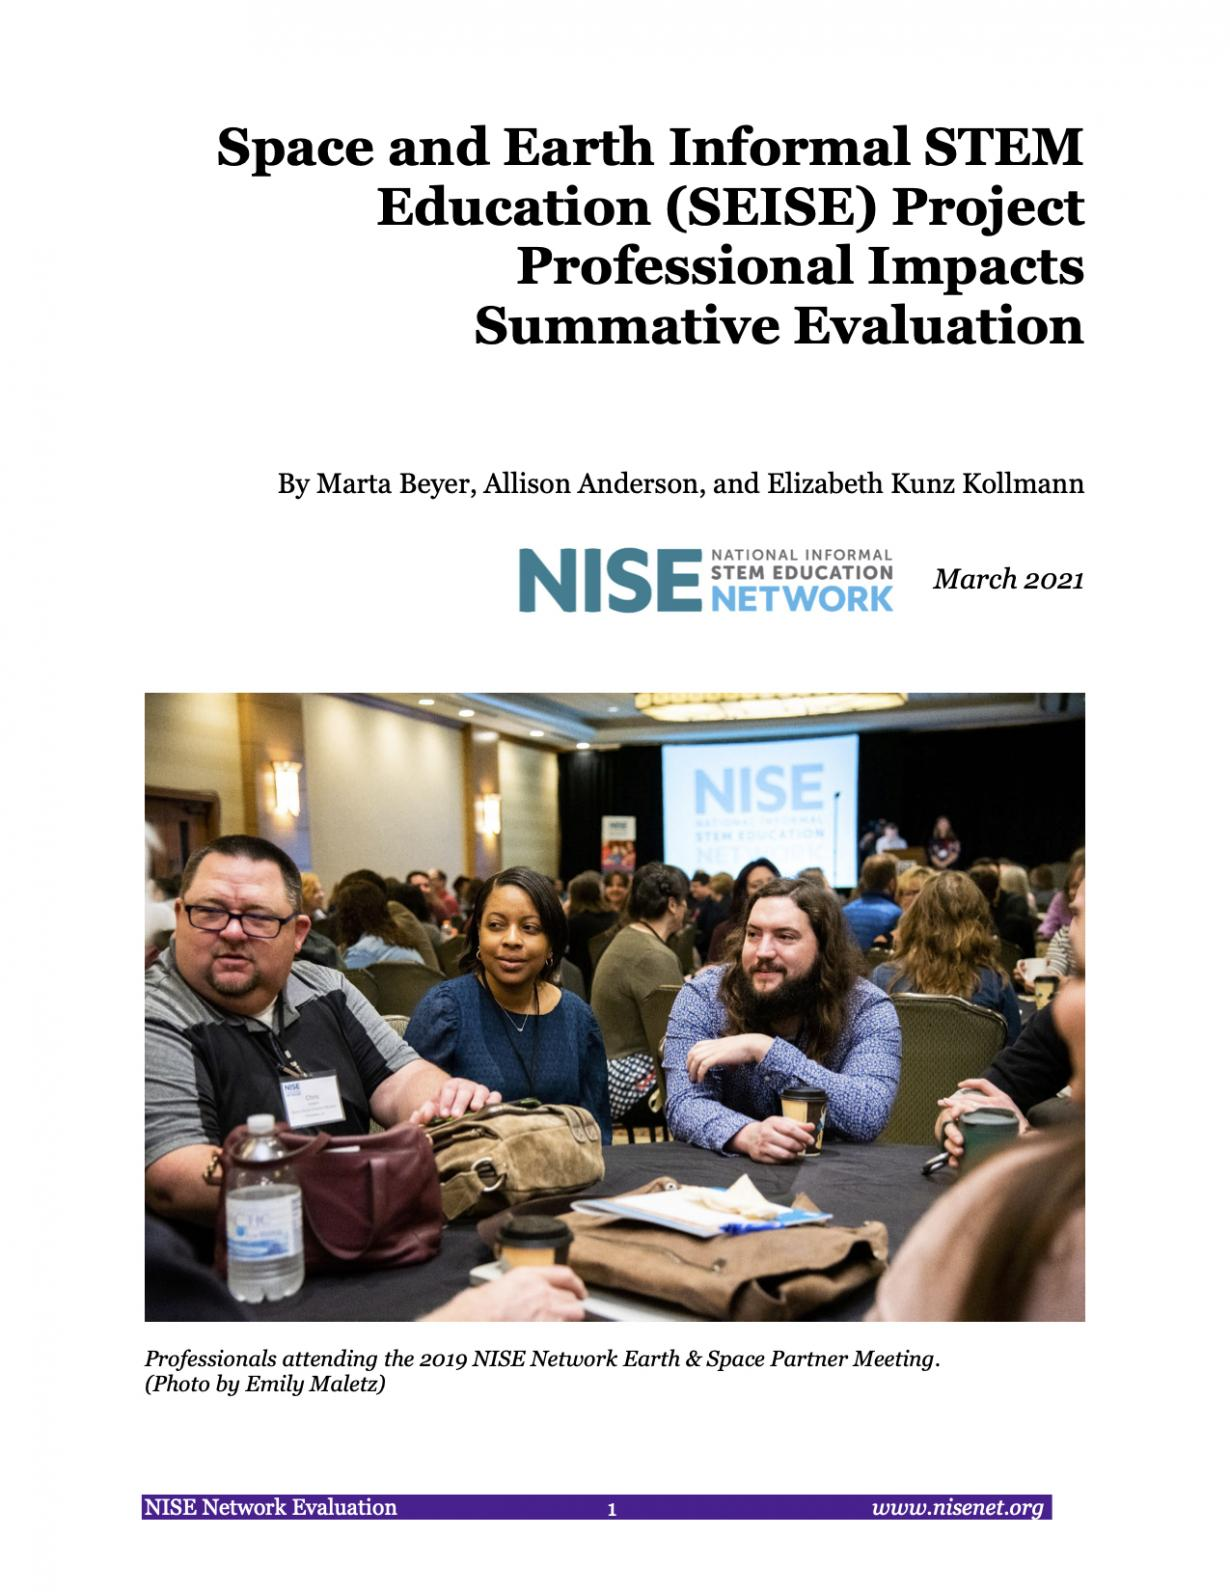 NISE Network SEISE Project Evaluation  Professional Impacts Summative Evaluation cover